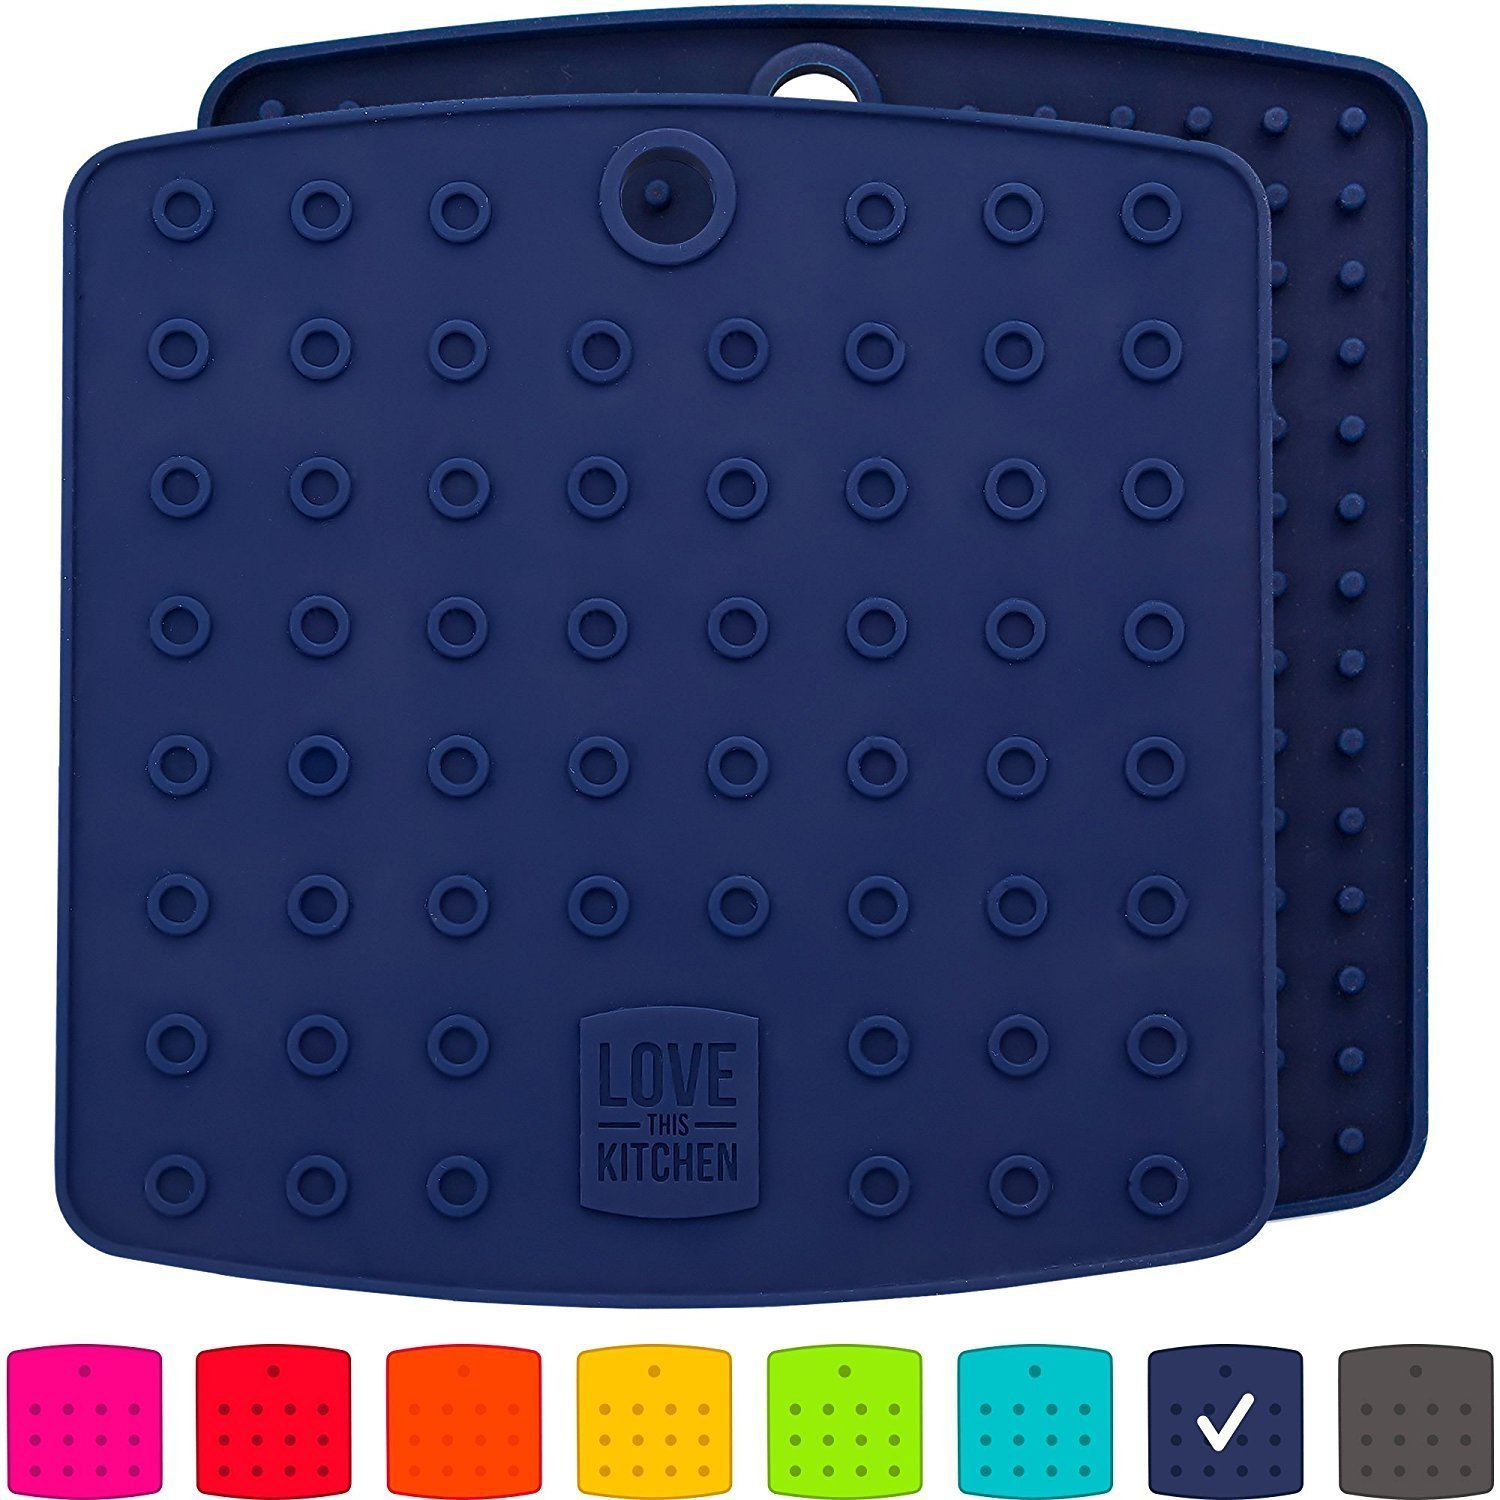 Premium Silicone Trivet Mats/Hot Pads, Pot Holders, Spoon Rest, Jar Opener & Coasters - Our 5 in 1 Kitchen Tool is Heat Resistant to 442 °F, Thick & Flexible (7'' x 7'', Navy Blue, 1 Pair)